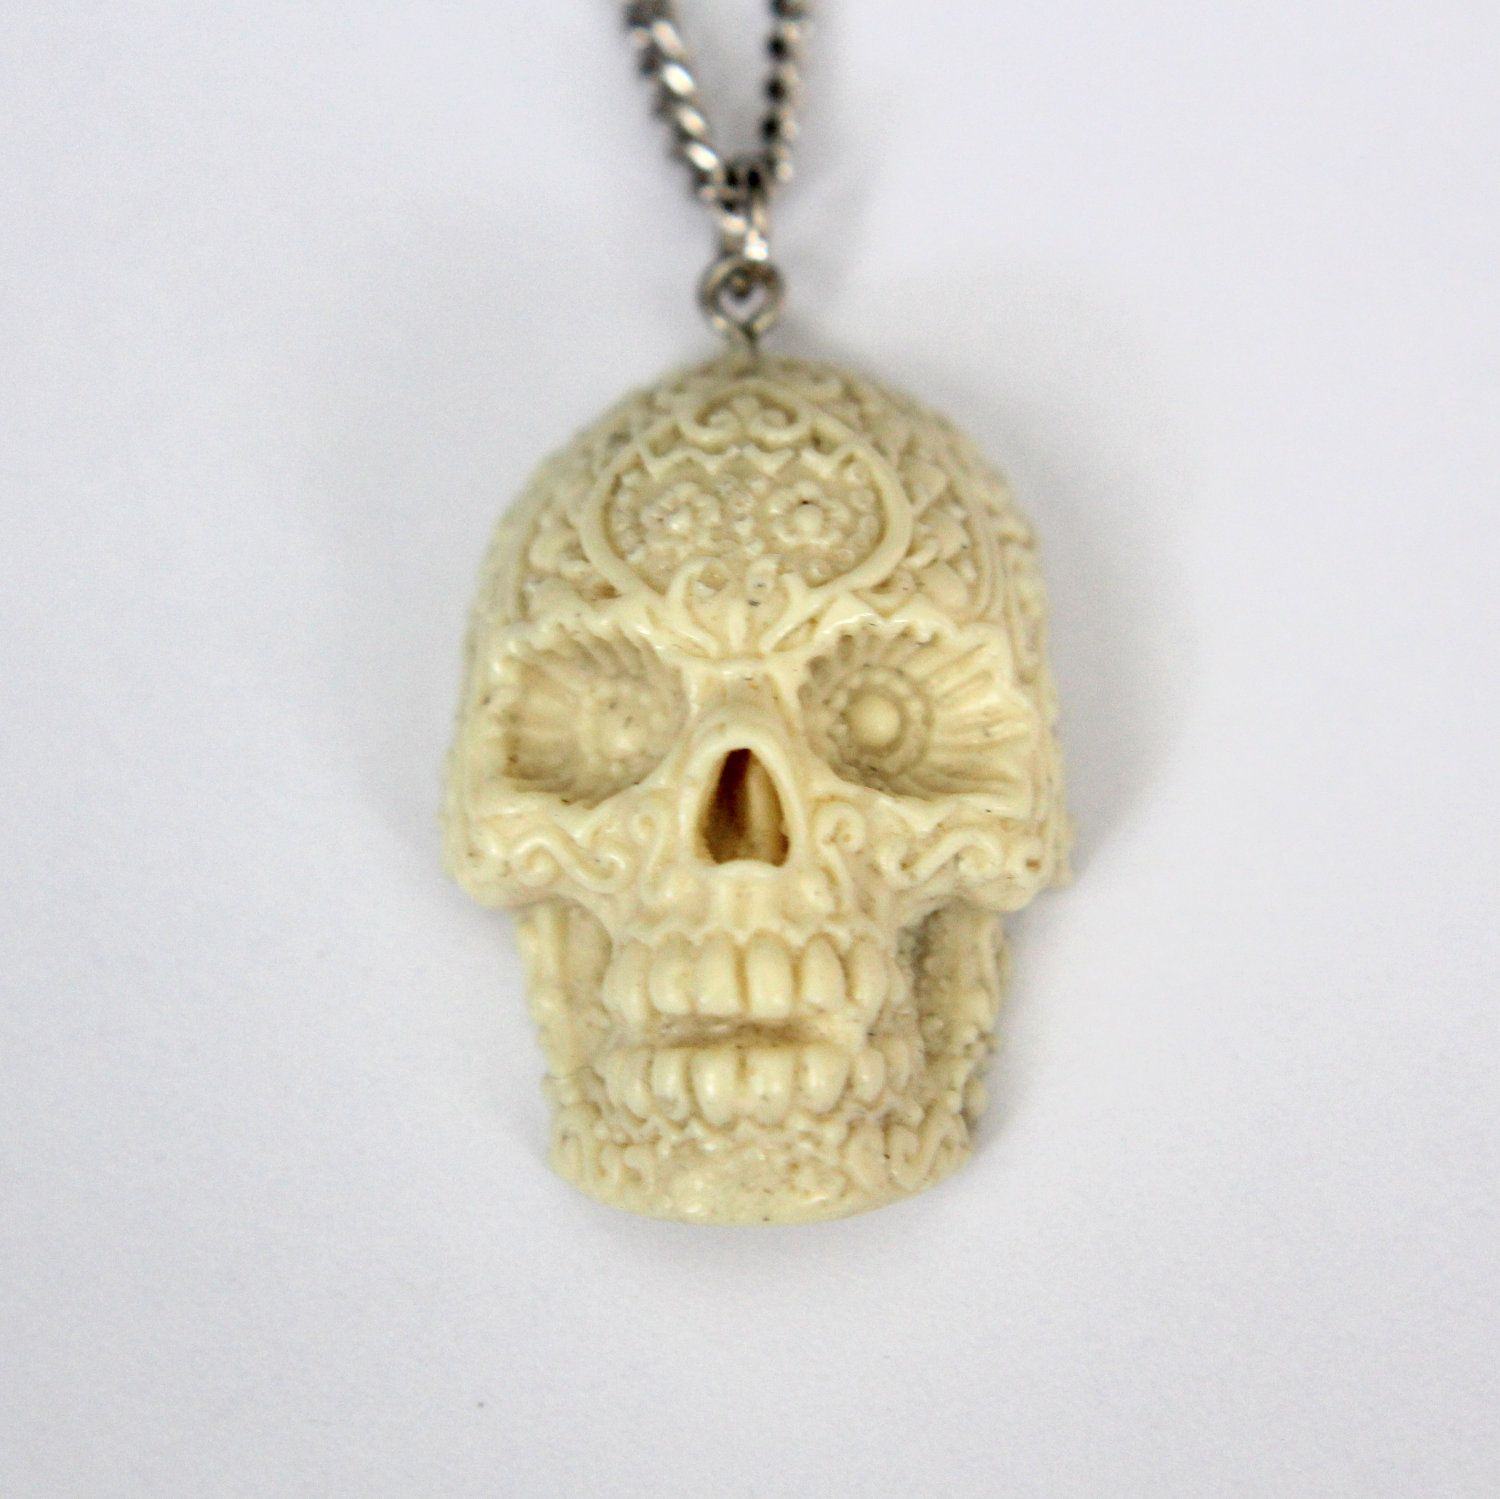 tattoocandy products with hearts heart sugar eyes skull pendant gold cartergore